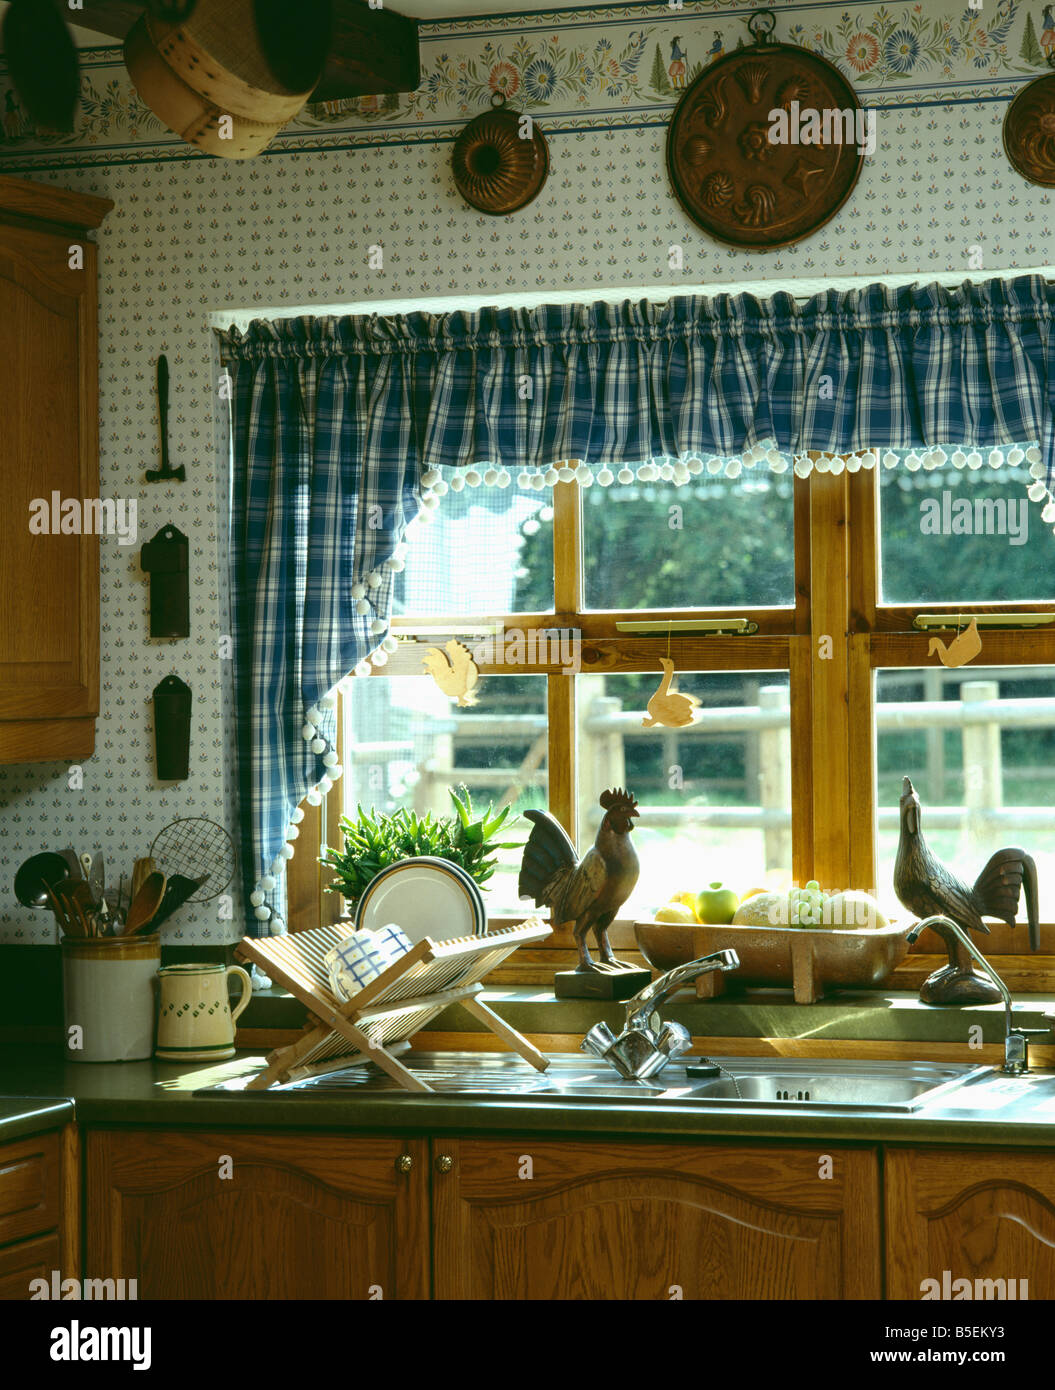 Blue U0026 White Checked Curtains And Pelmet On Window Above Plate Rack On  Draining Board Of Kitchen Sink